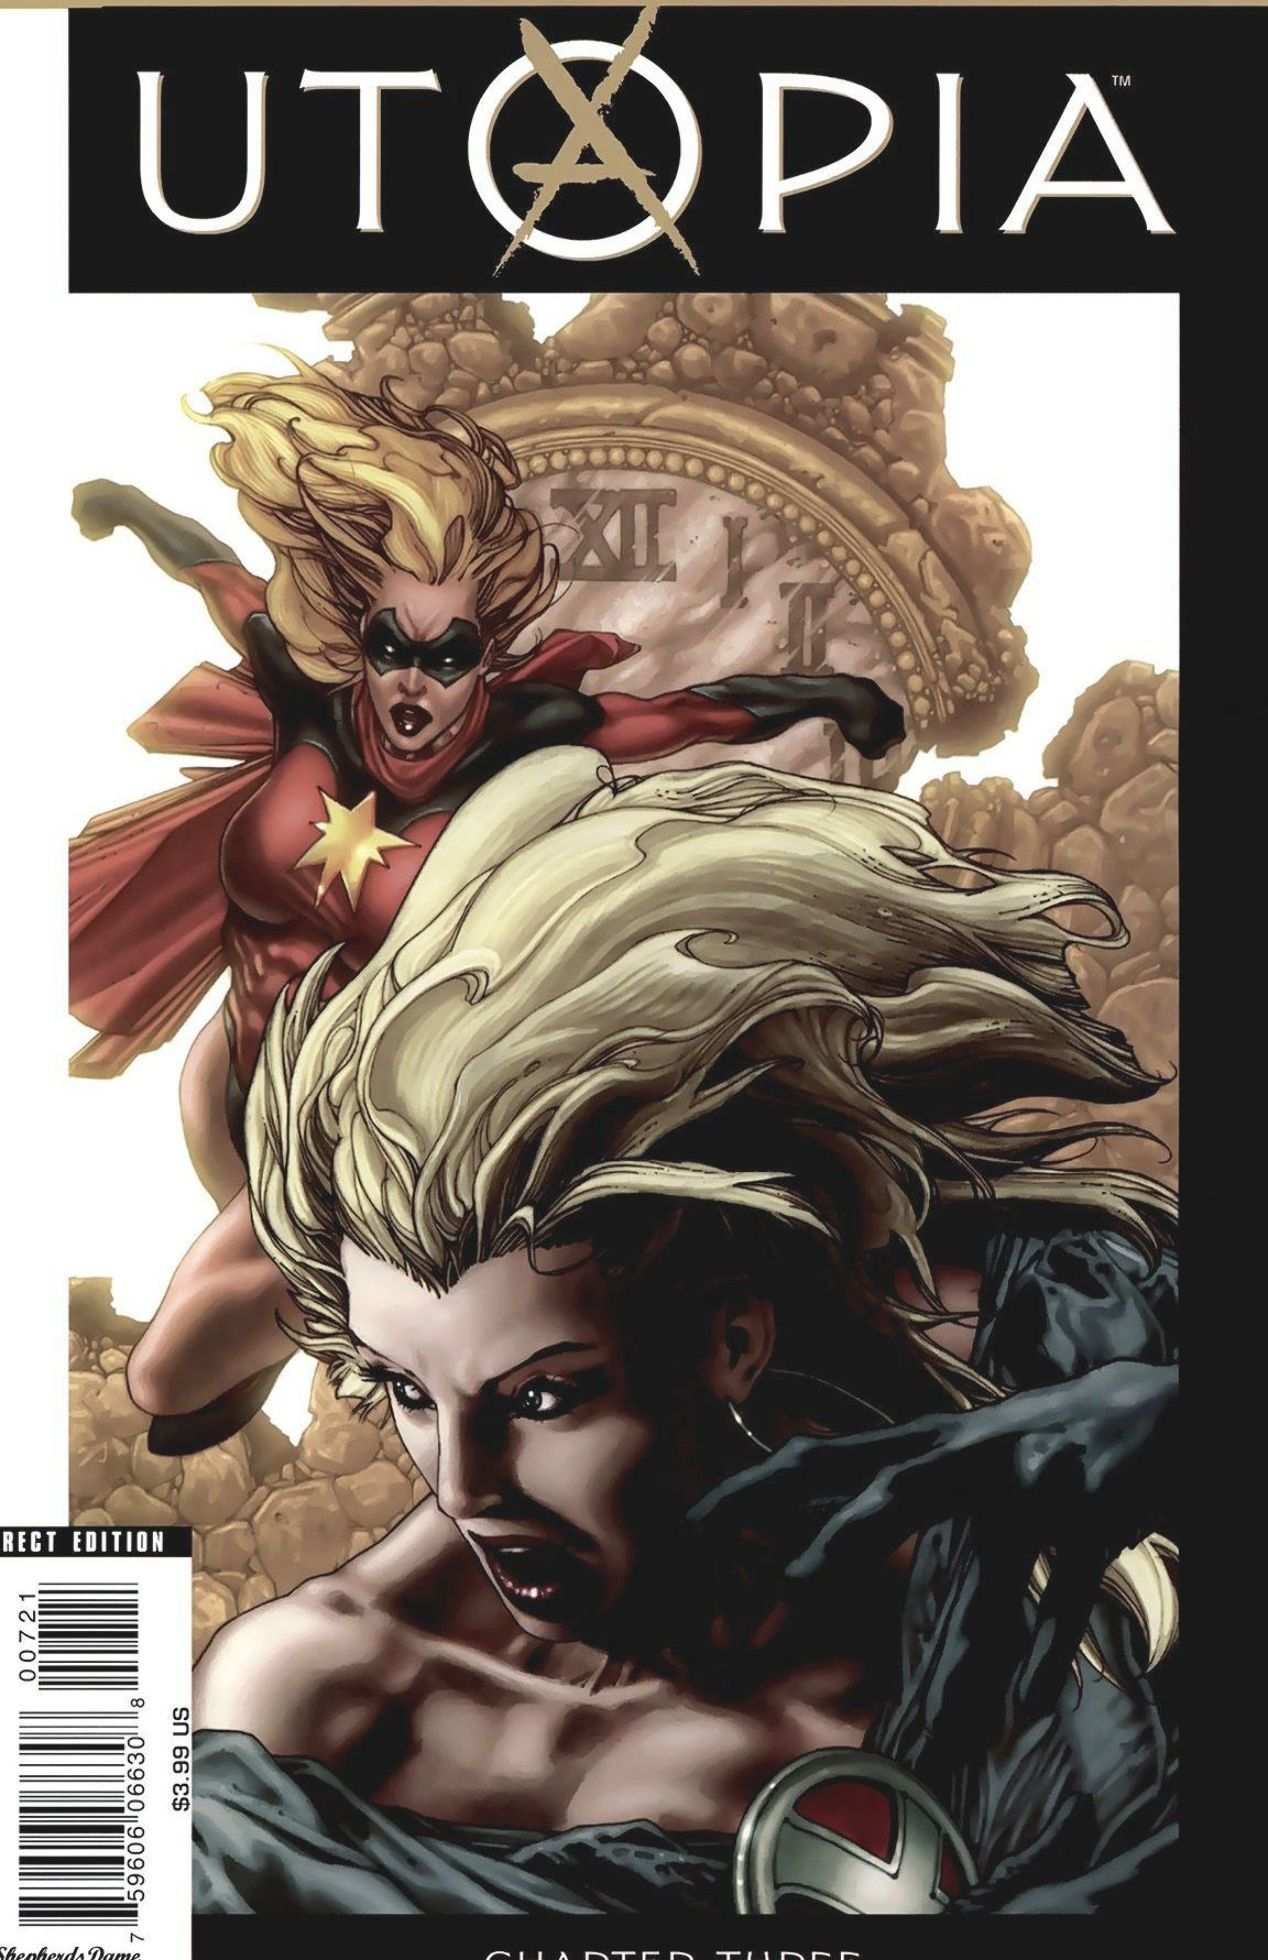 Dark Avengers 2009 Issue 7 Read Dark Avengers 2009 Issue 7 Comic Online In High Quality Simone Bianchi Simone Bia In 2020 Simone Bianchi Comics Online Avengers